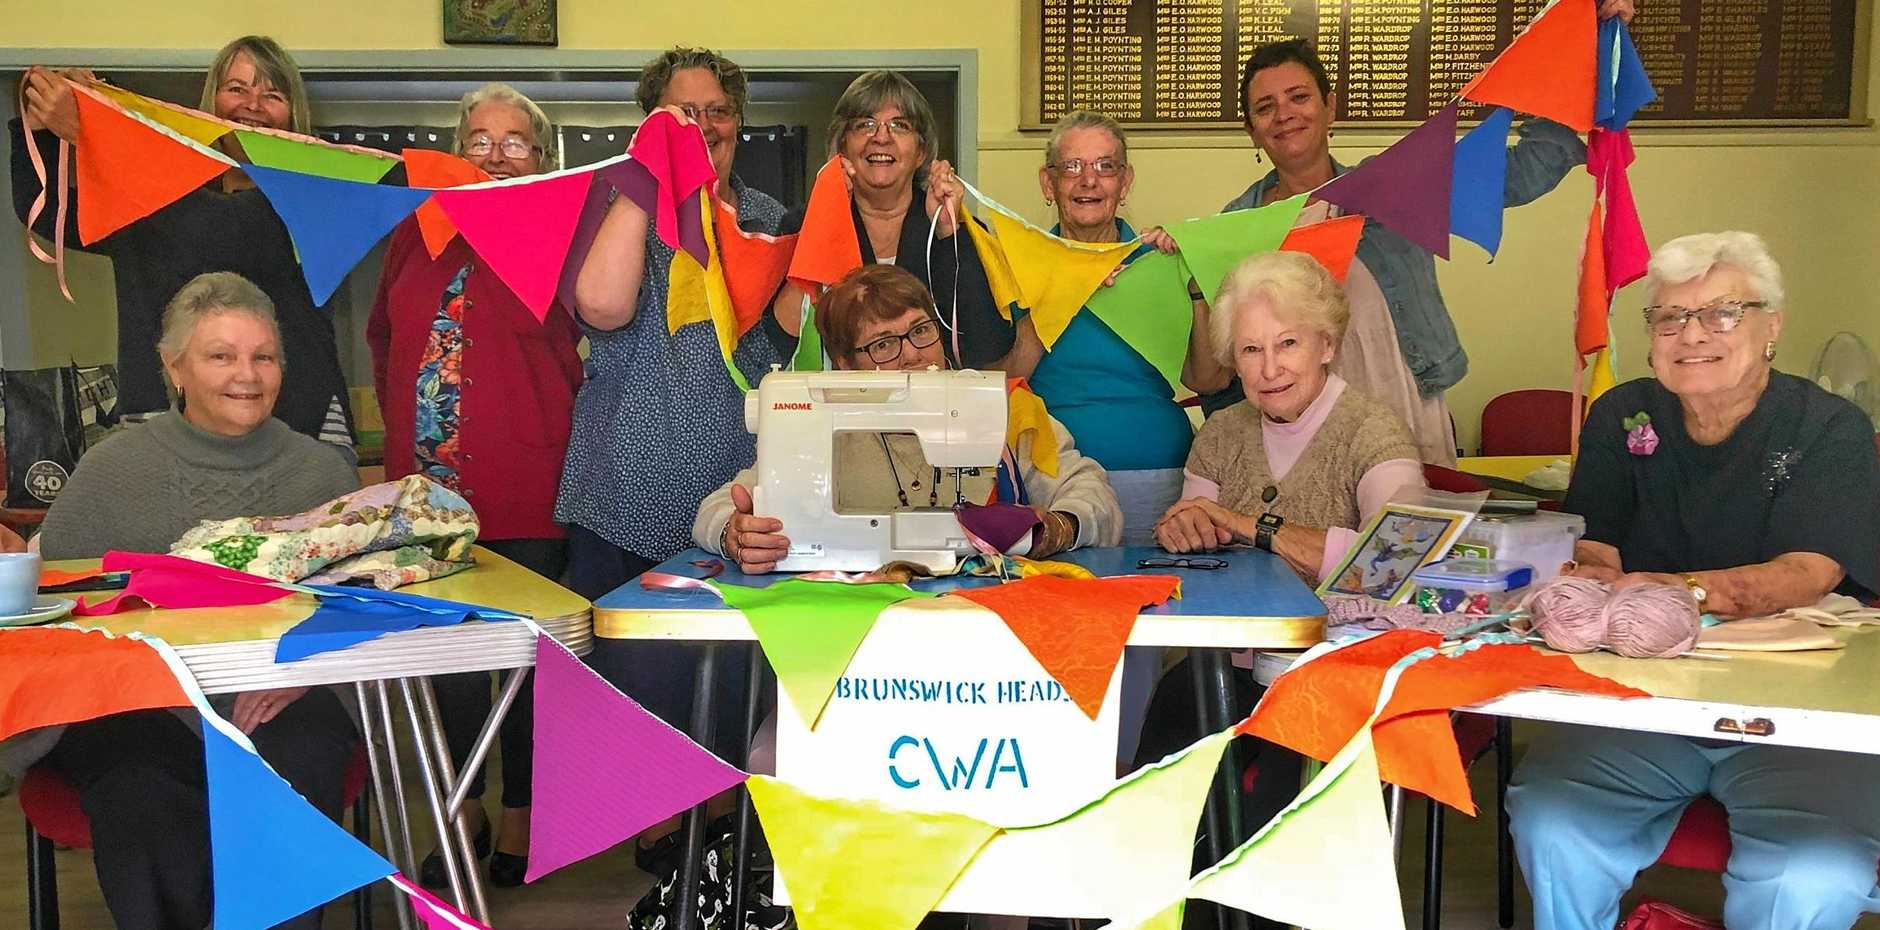 BUSY BEES: Members of the Brunswick Heads CWA have been busy making bunting for this year's Old and Gold Festival.